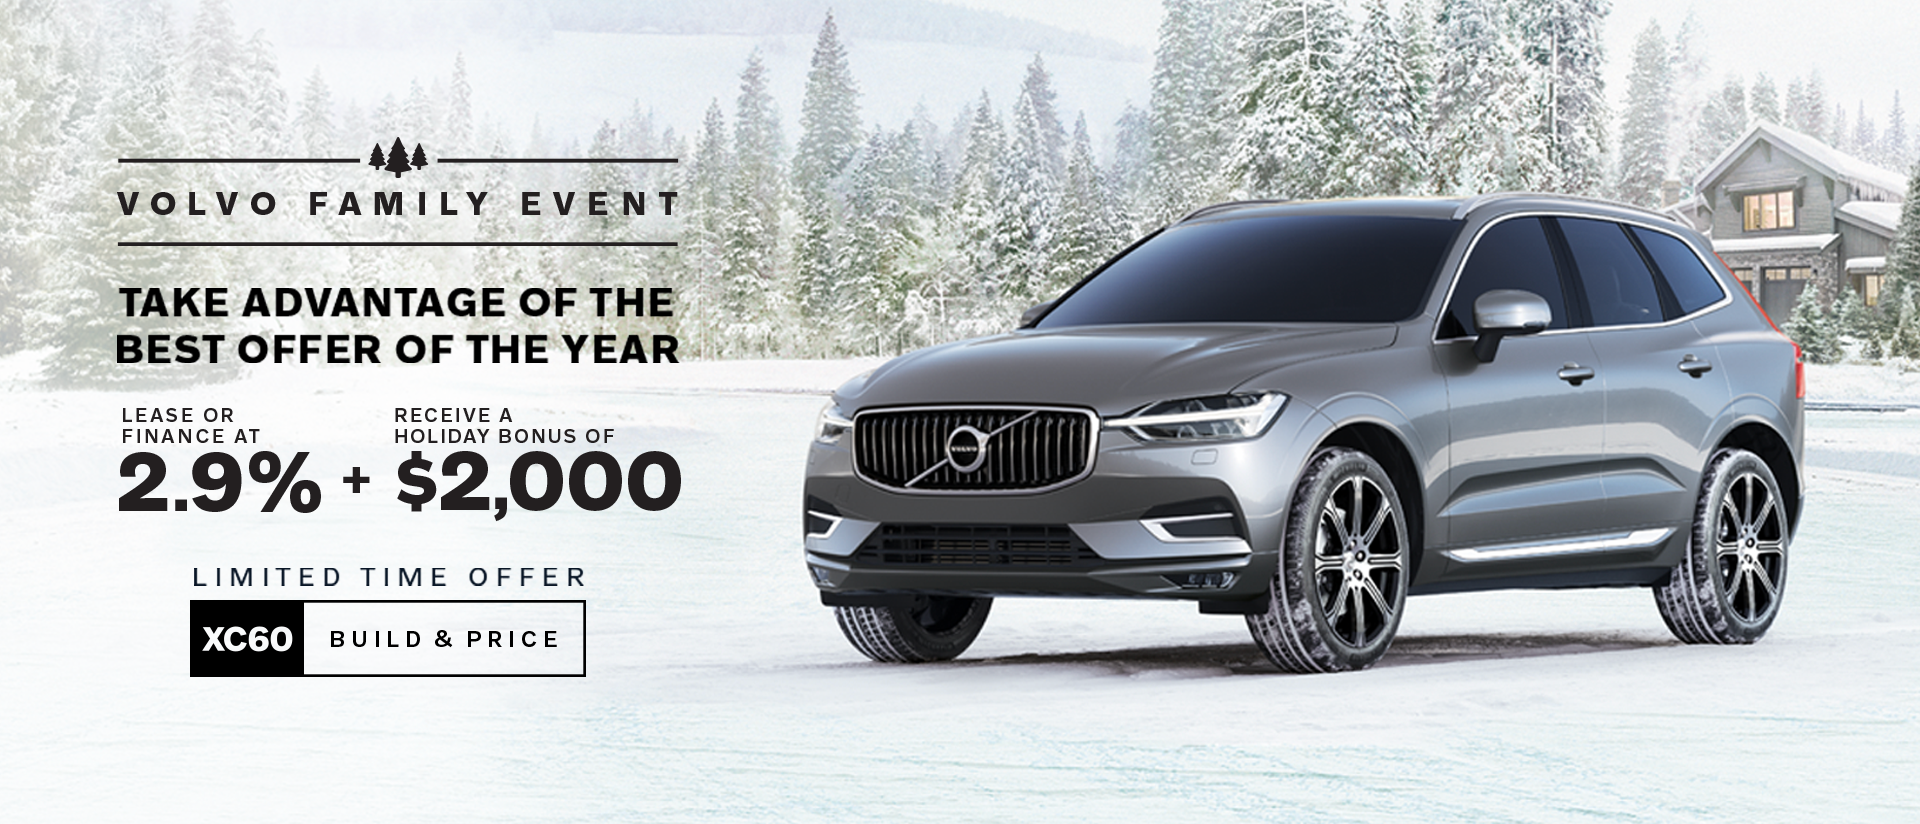 volvo family event banner gray suv in snow